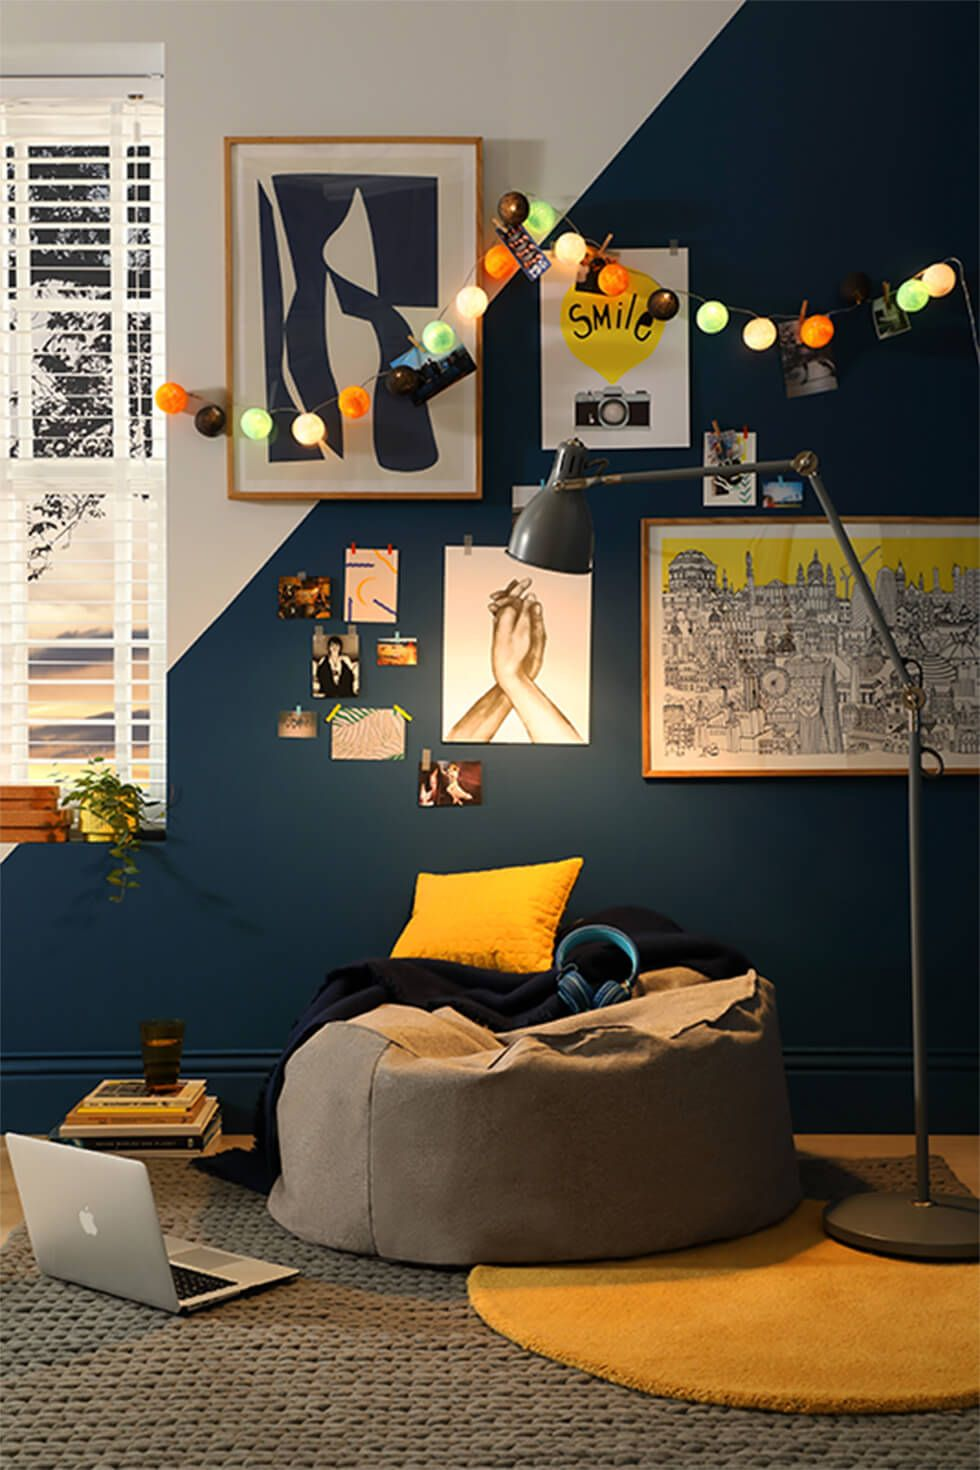 A relaxation corner in a teenager's room with a geometric wall, bean bag and string lights